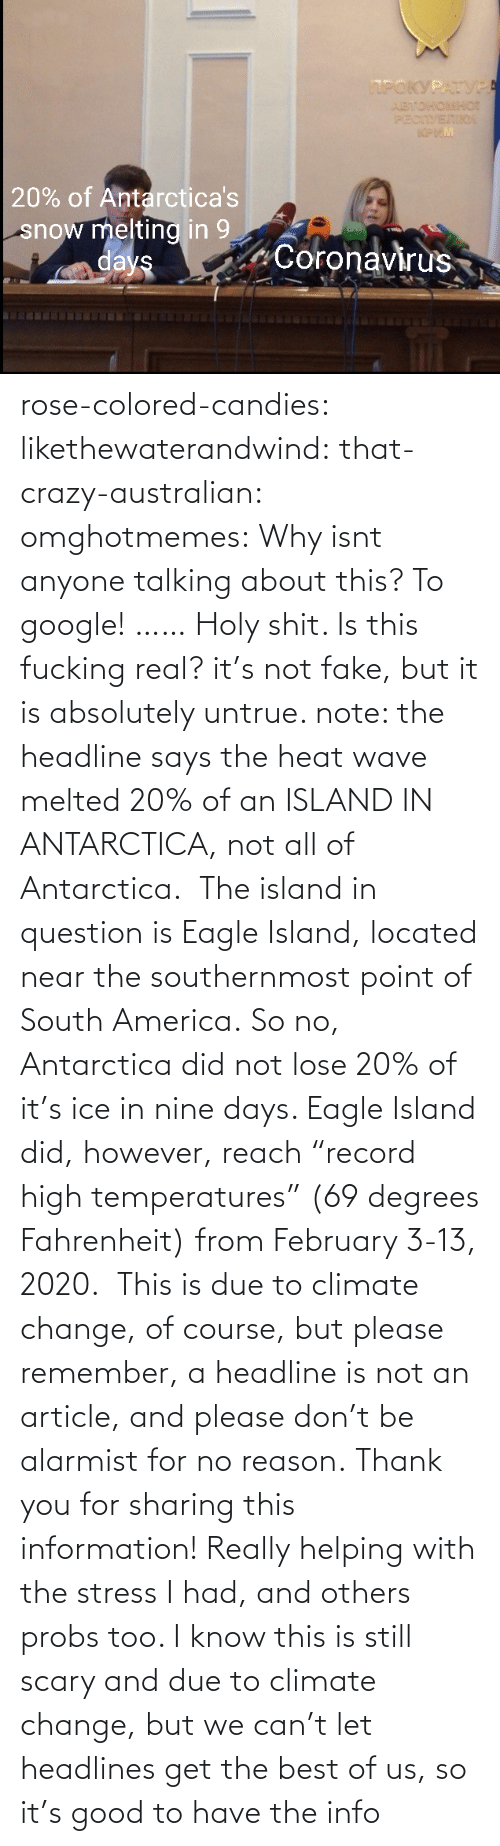 "Isnt: rose-colored-candies: likethewaterandwind:   that-crazy-australian:  omghotmemes:  Why isnt anyone talking about this?   To google!  ……   Holy shit. Is this fucking real?   it's not fake, but it is absolutely untrue. note: the headline says the heat wave melted 20% of an ISLAND IN ANTARCTICA, not all of Antarctica.  The island in question is Eagle Island, located near the southernmost point of South America. So no, Antarctica did not lose 20% of it's ice in nine days. Eagle Island did, however, reach ""record high temperatures"" (69 degrees Fahrenheit) from February 3-13, 2020.  This is due to climate change, of course, but please remember, a headline is not an article, and please don't be alarmist for no reason.    Thank you for sharing this information! Really helping with the stress I had, and others probs too. I know this is still scary and due to climate change, but we can't let headlines get the best of us, so it's good to have the info"